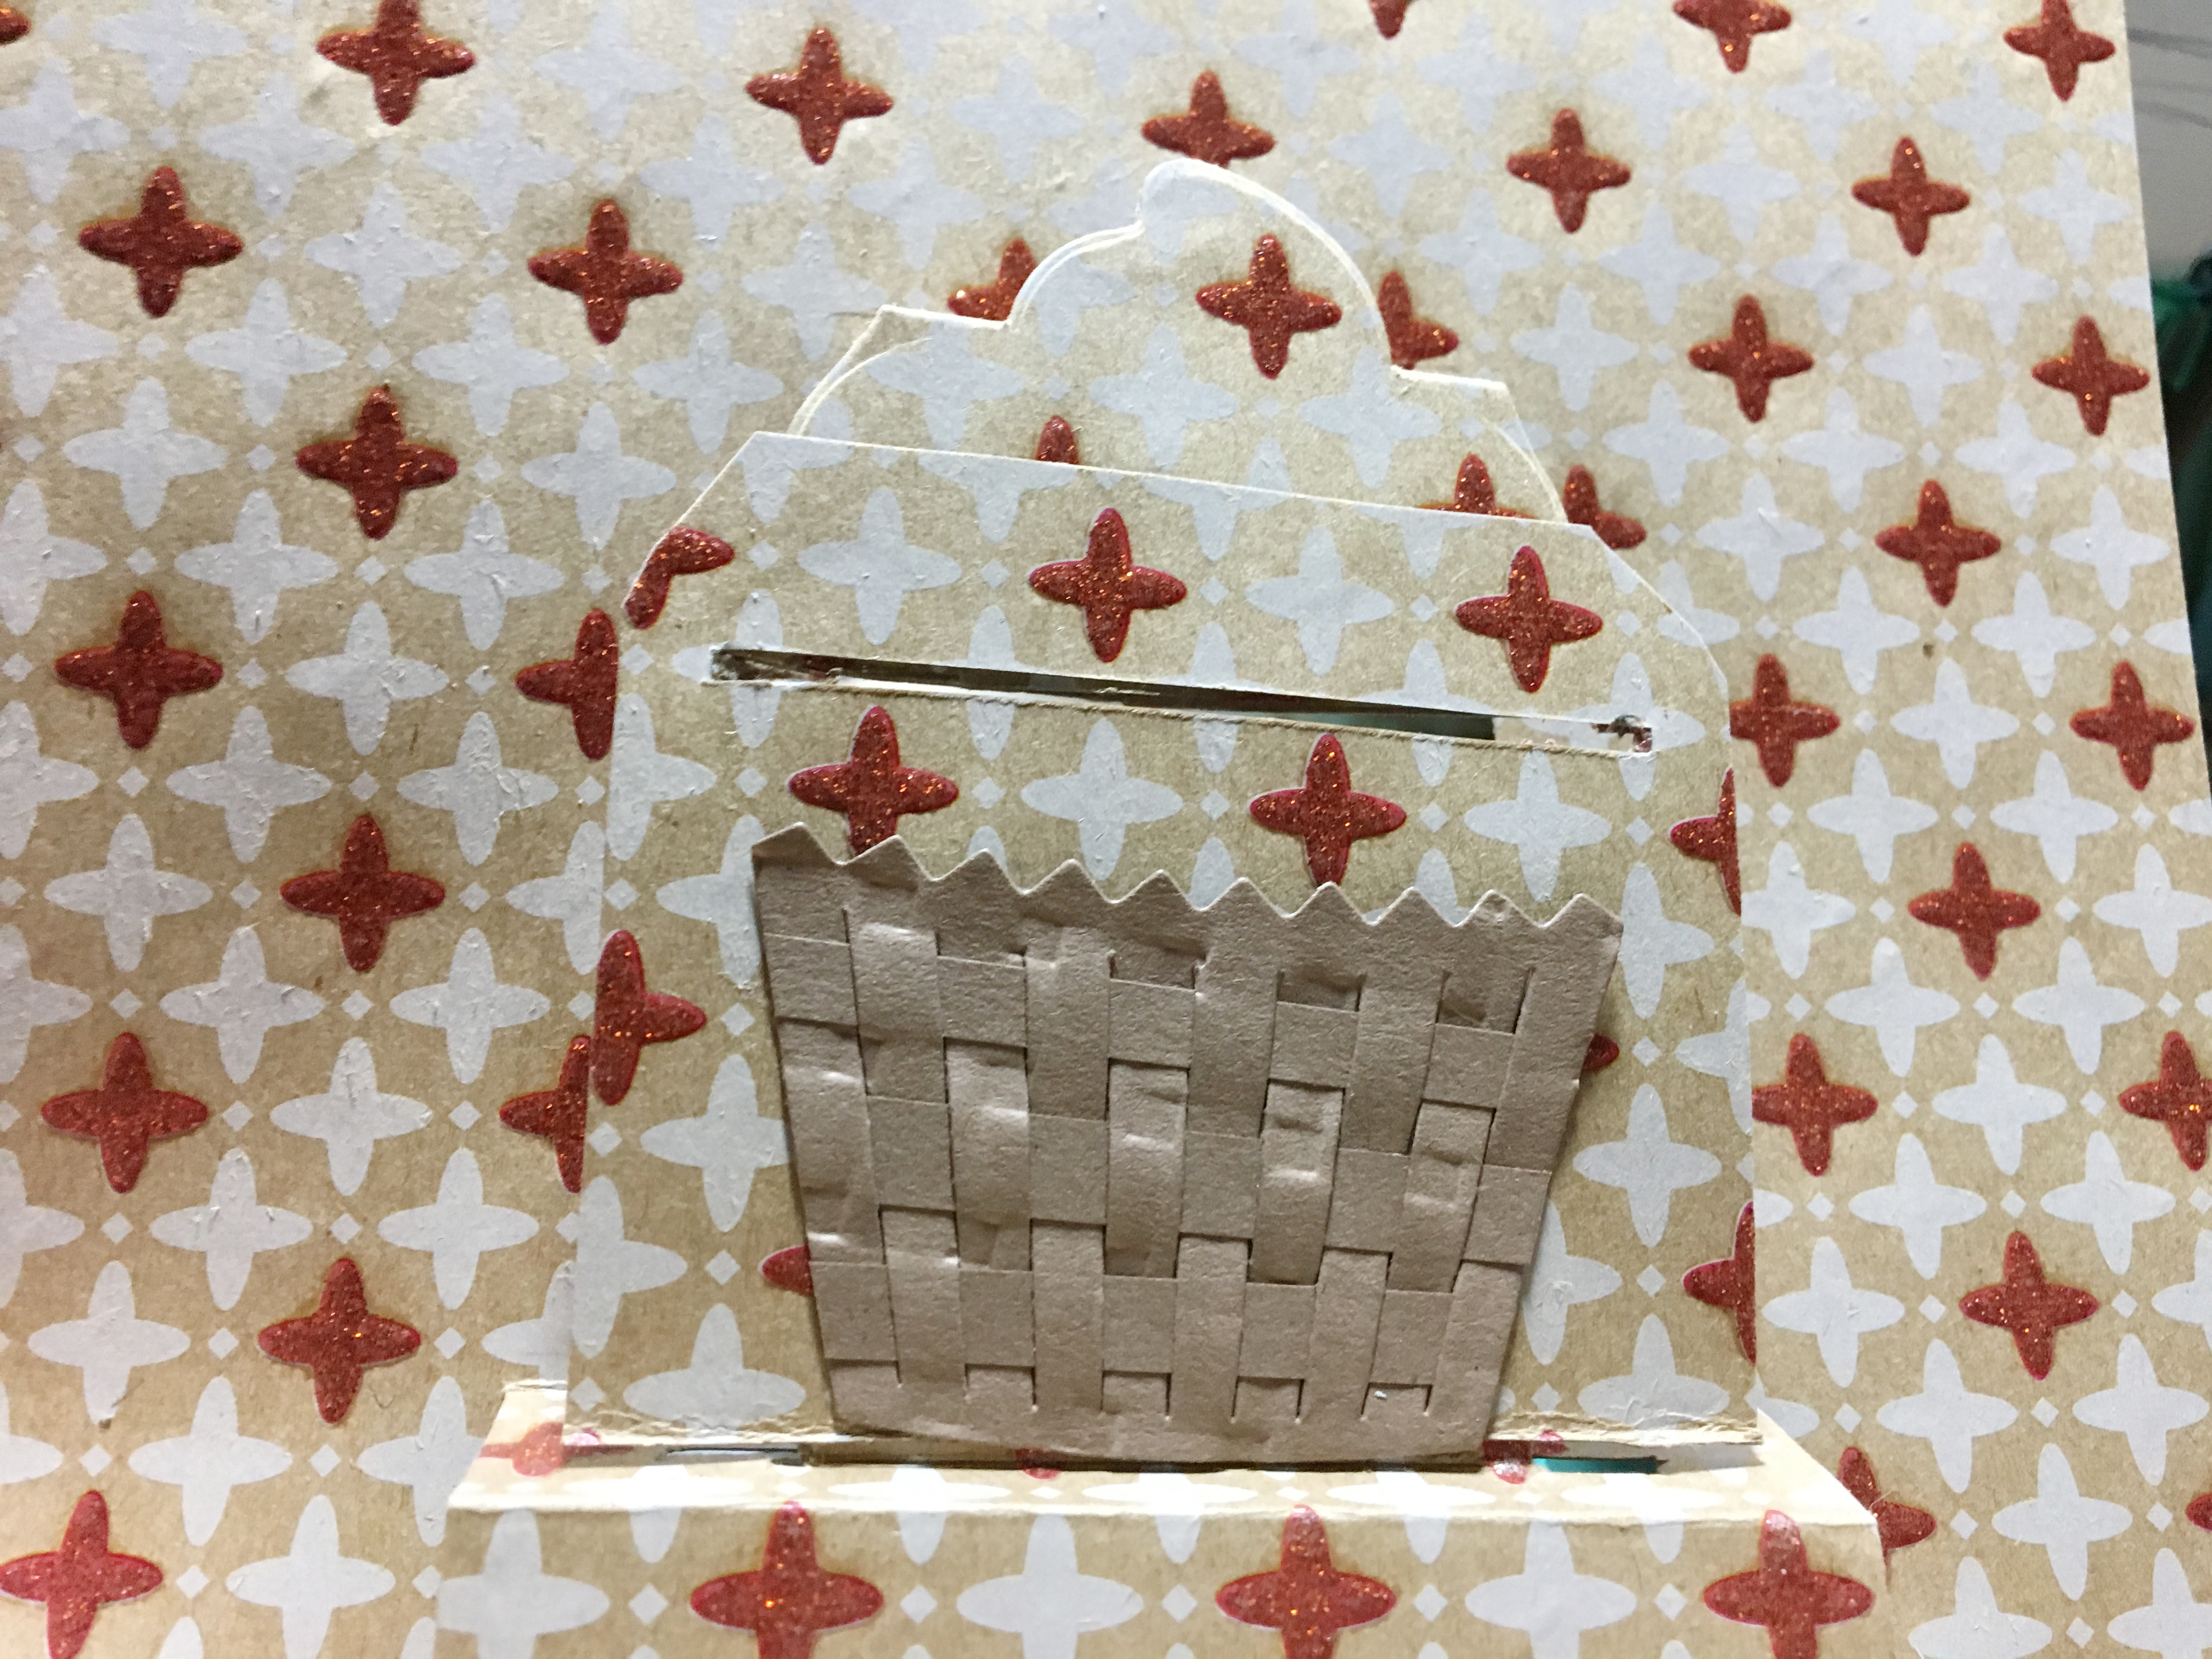 Square added with basket